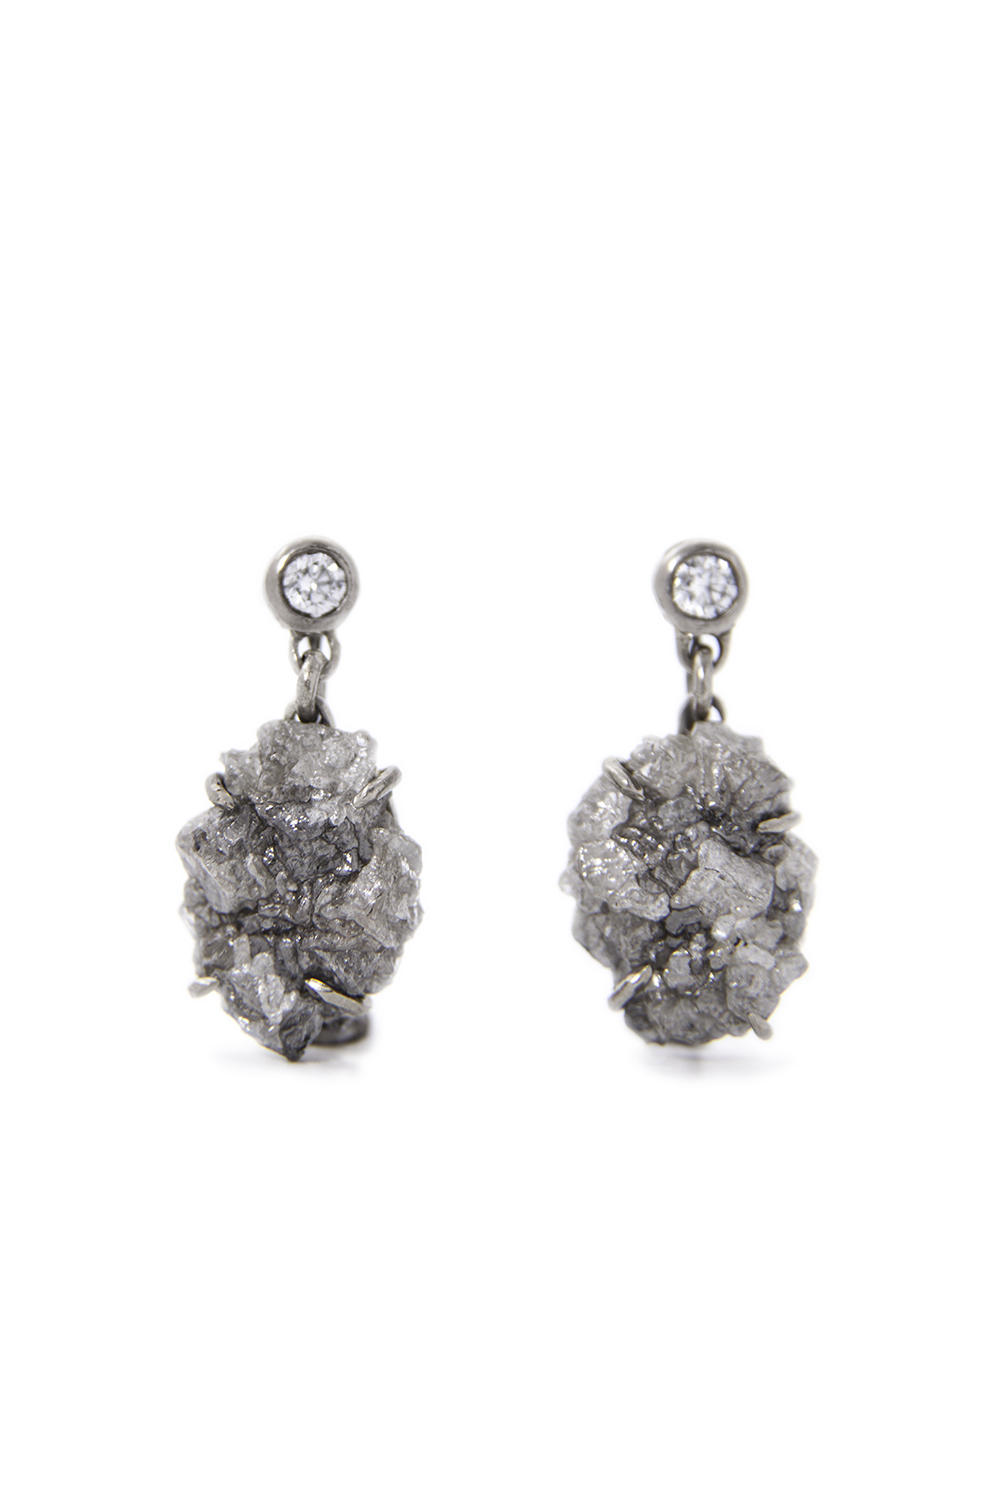 Diamond crystal drops in white gold, £2800